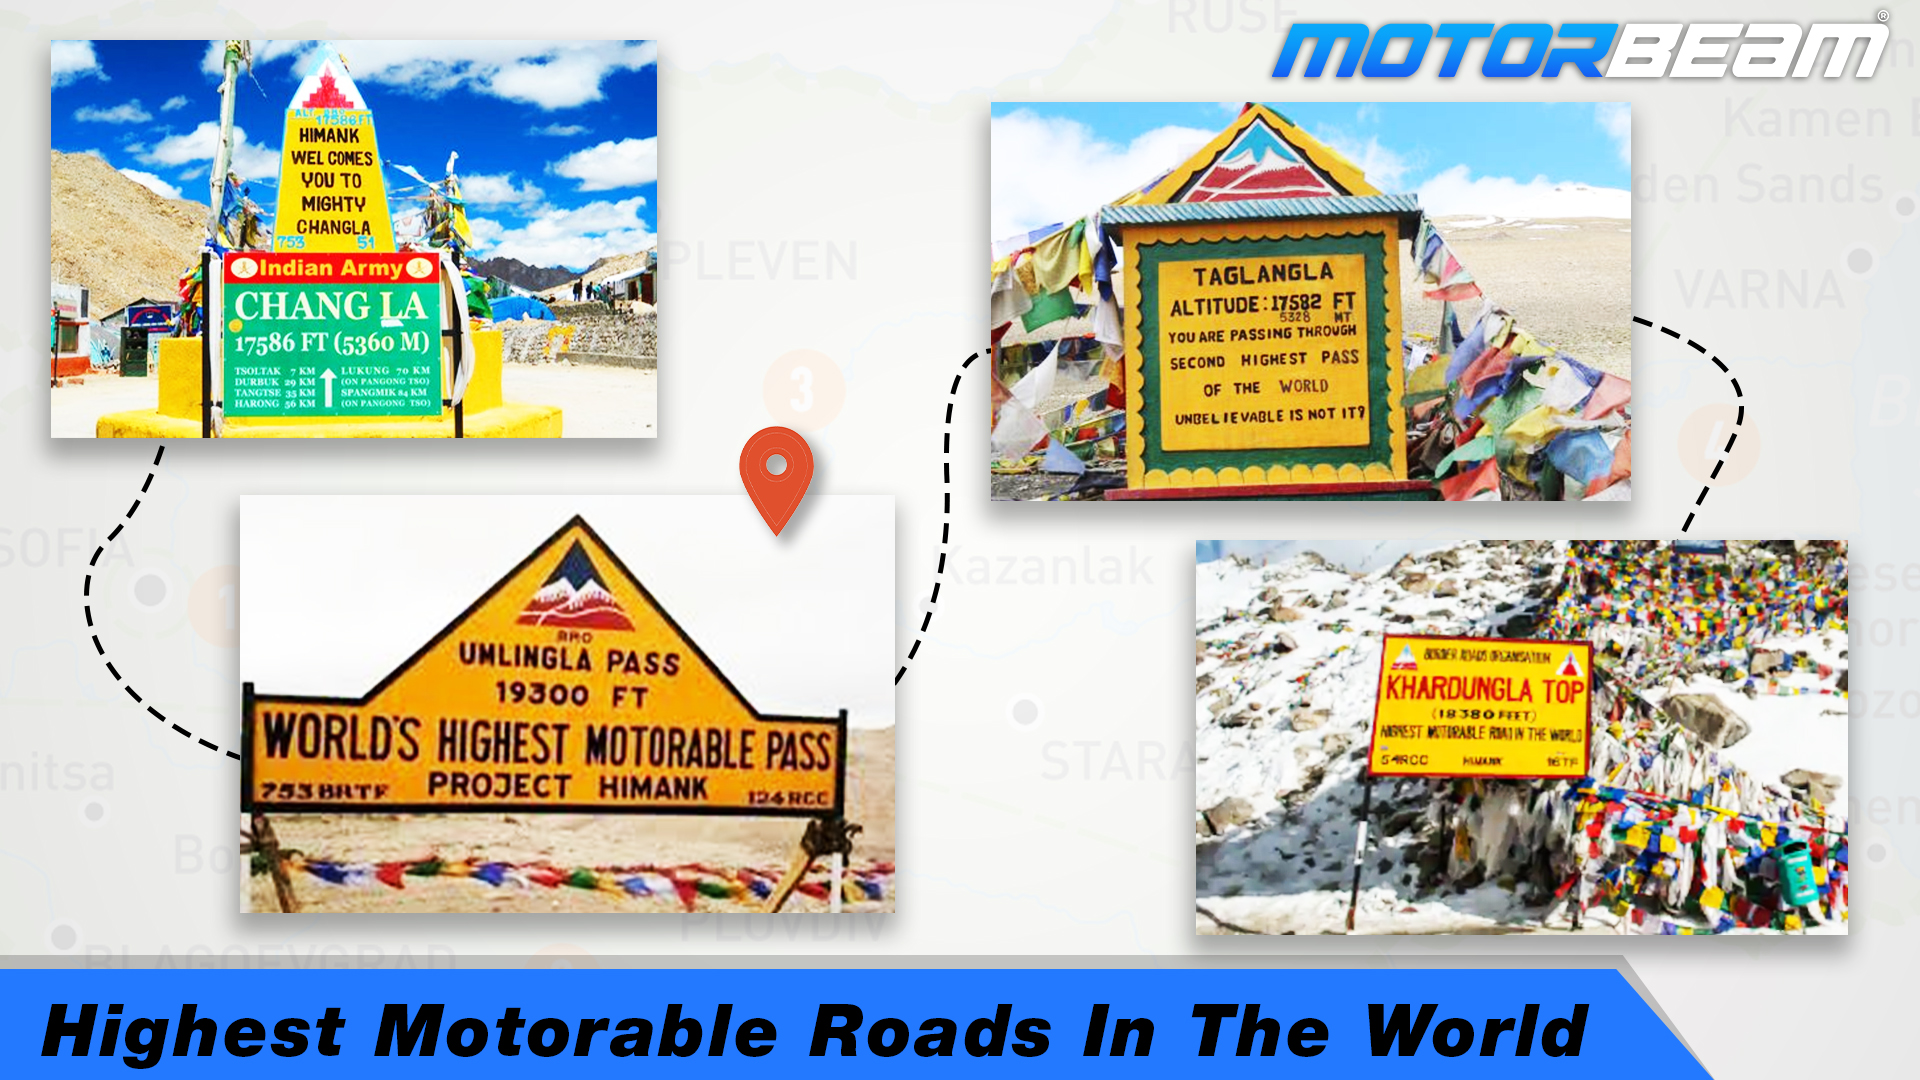 Highest Motorable Roads In The World